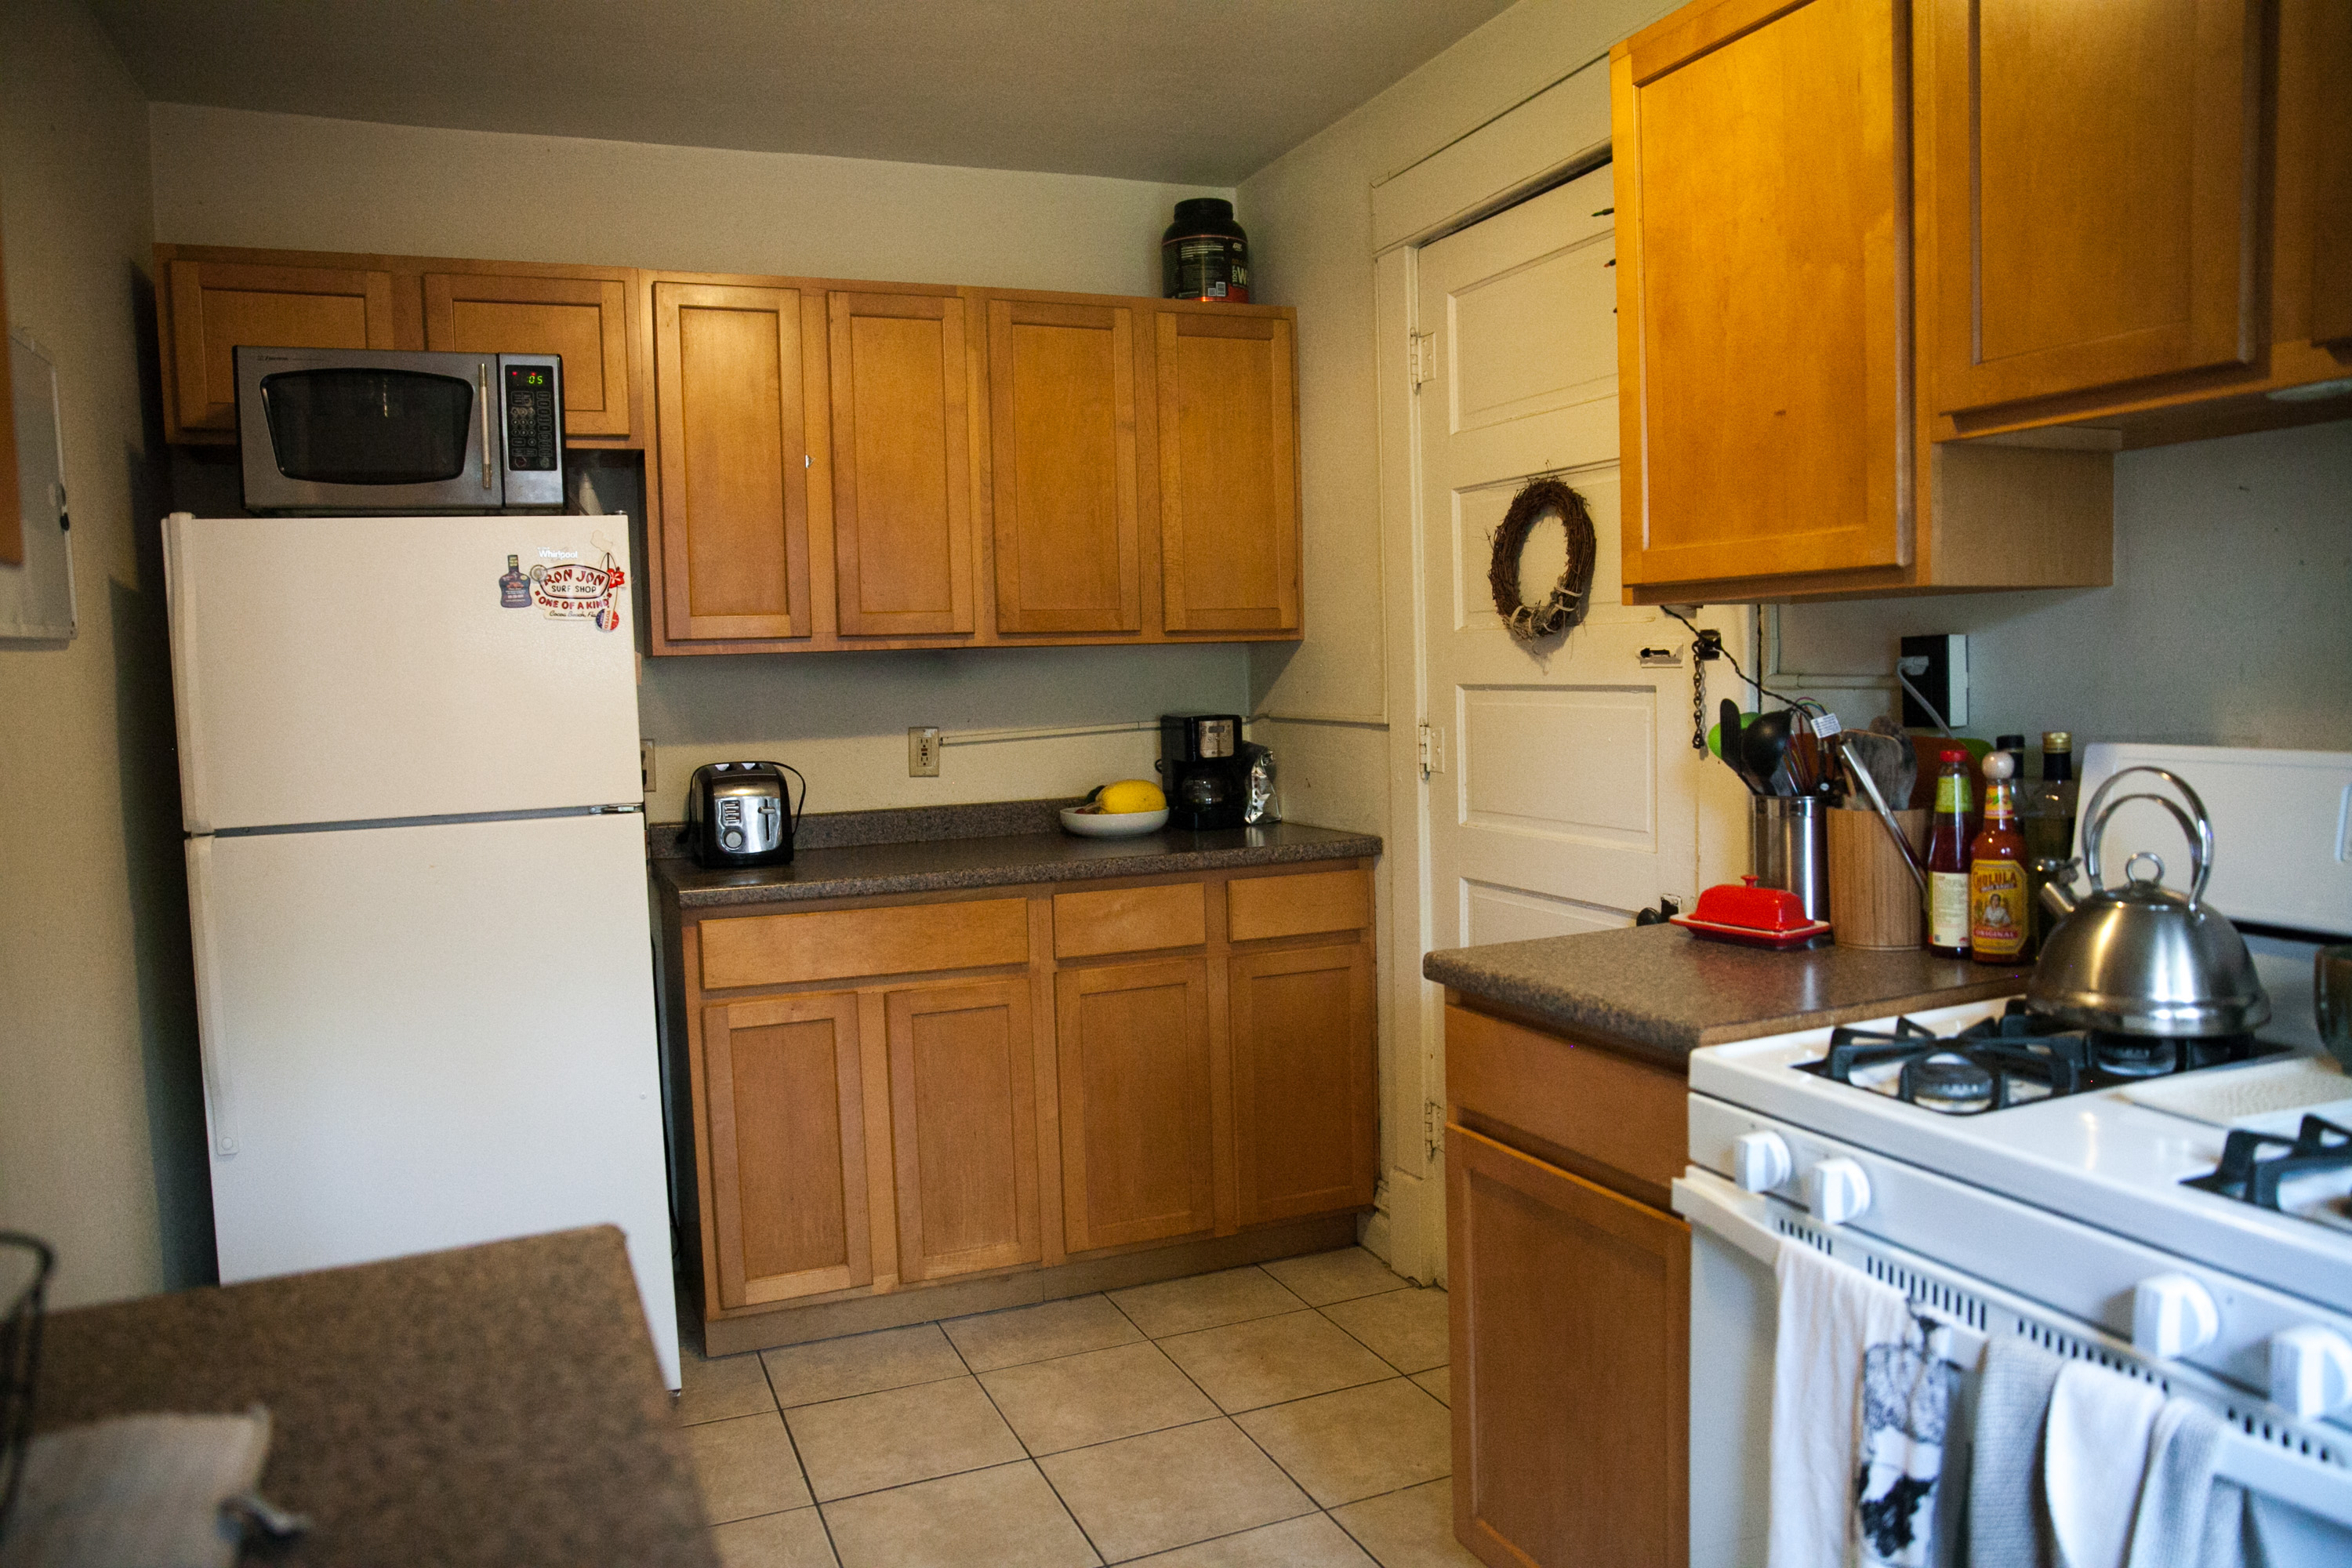 Apartments Near Wisconsin 213 N. Hamilton Street for Wisconsin Students in , WI